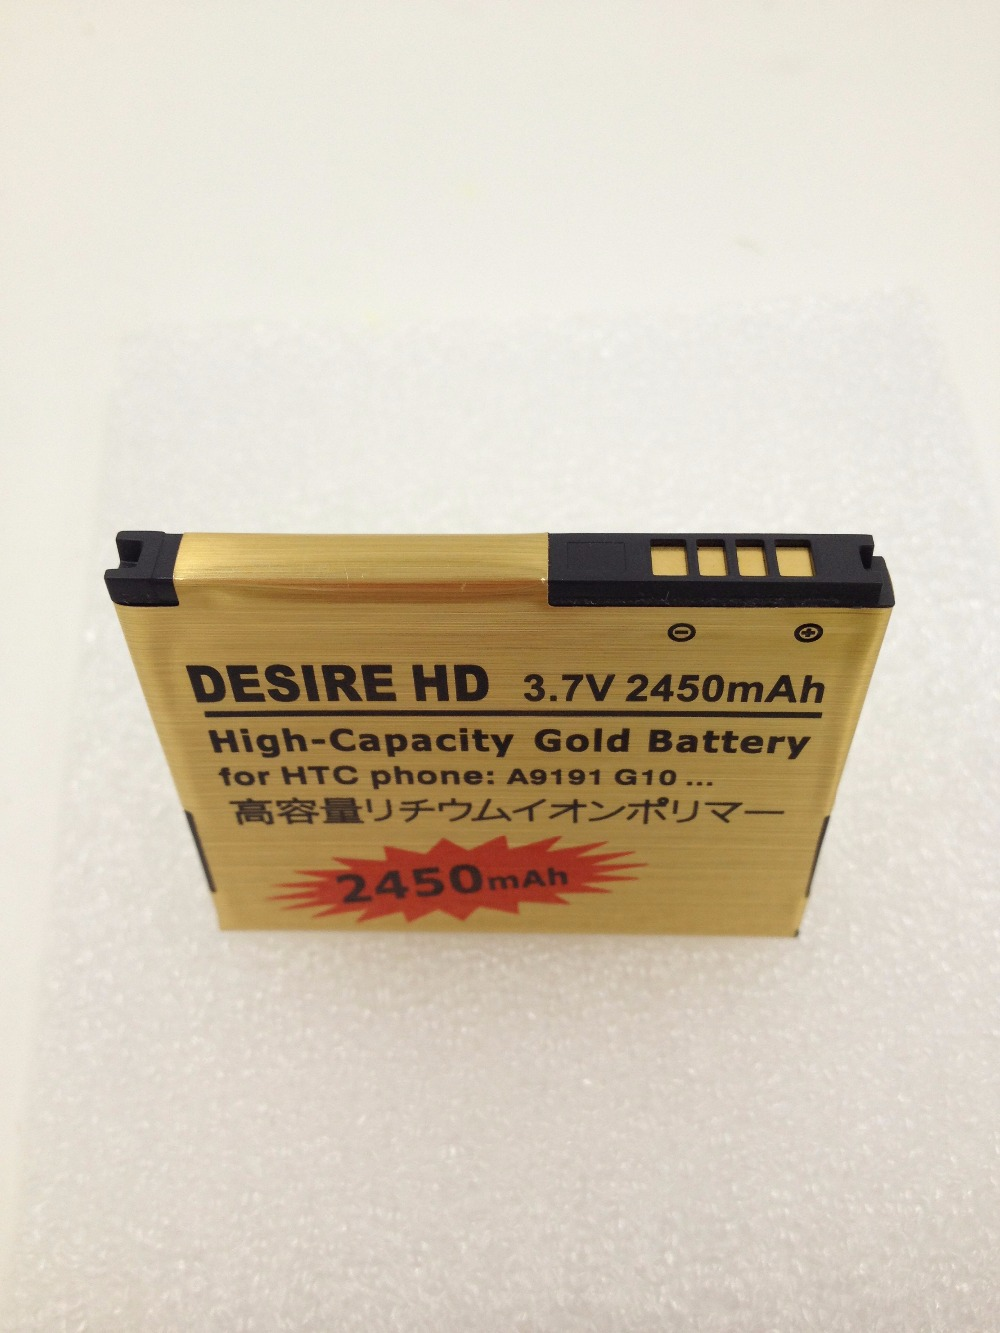 2450mAh High Capacity Gold Battery For HTC Desire HD G10 A9191 Phone Battery